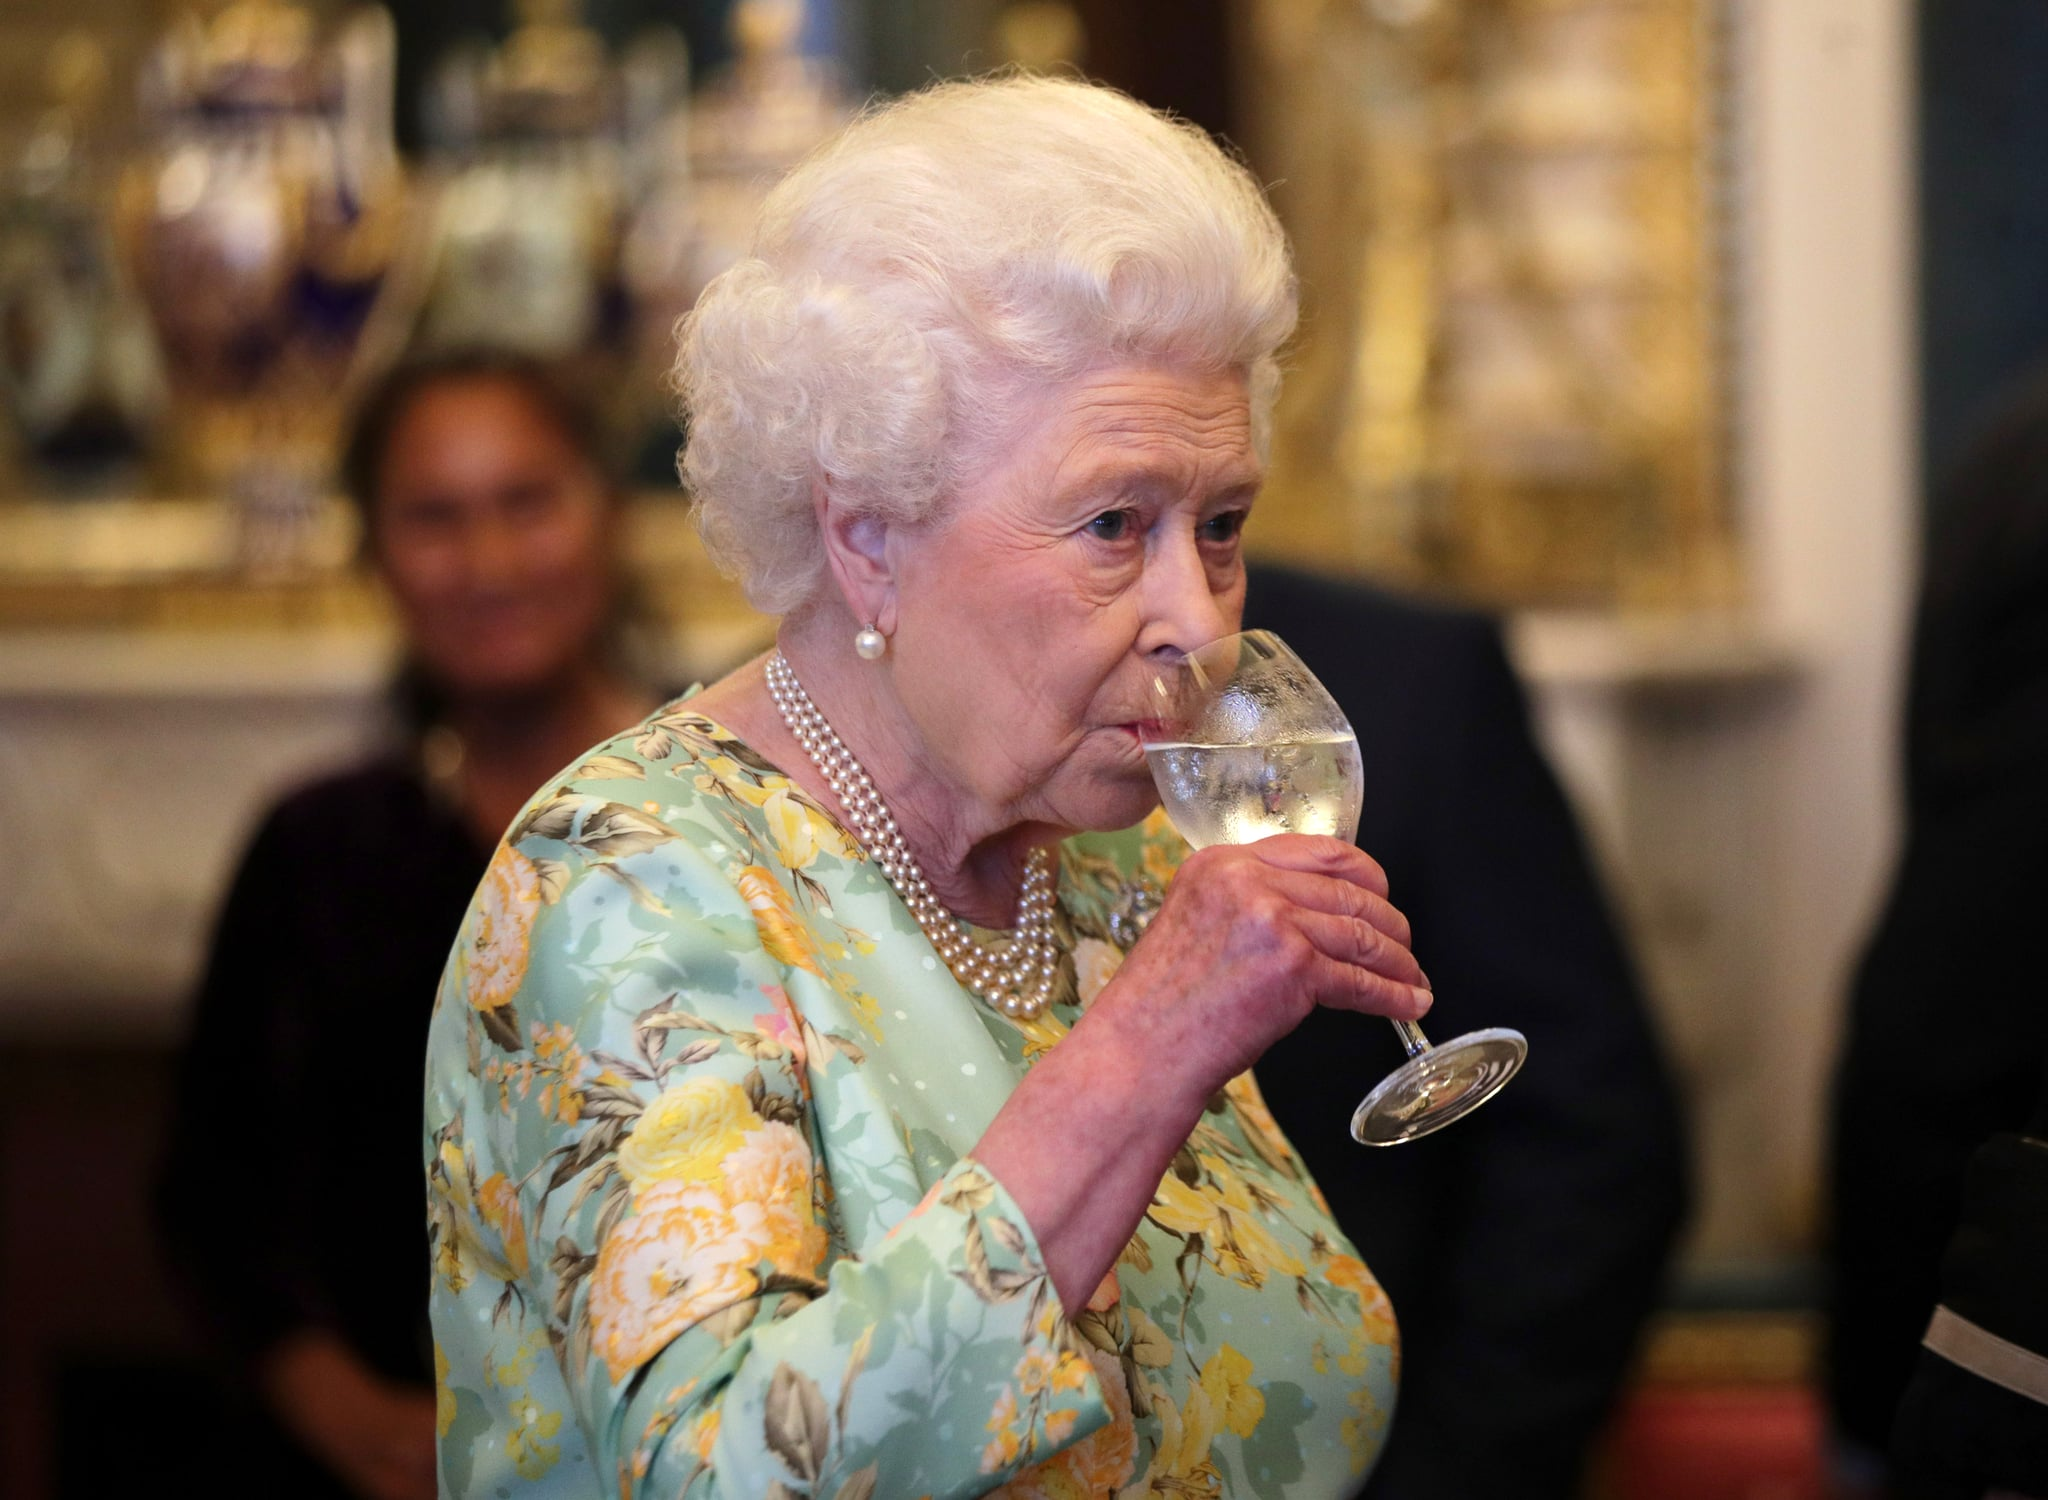 Britain's Queen Elizabeth II attends a reception for the winners of The Queen's Awards for Enterprise 2017 at Buckingham Palace in central London on July 11, 2017. The Queen's Awards for Enterprise are the UK's most prestigious awards for business success. This year's Awards recognise the success of businesses in a wide variety of sectors. Their work ranges from pioneering healthcare and green energy solutions, to digital marketing and laser technology. / AFP PHOTO / POOL / Yui MOK        (Photo credit should read YUI MOK/AFP/Getty Images)